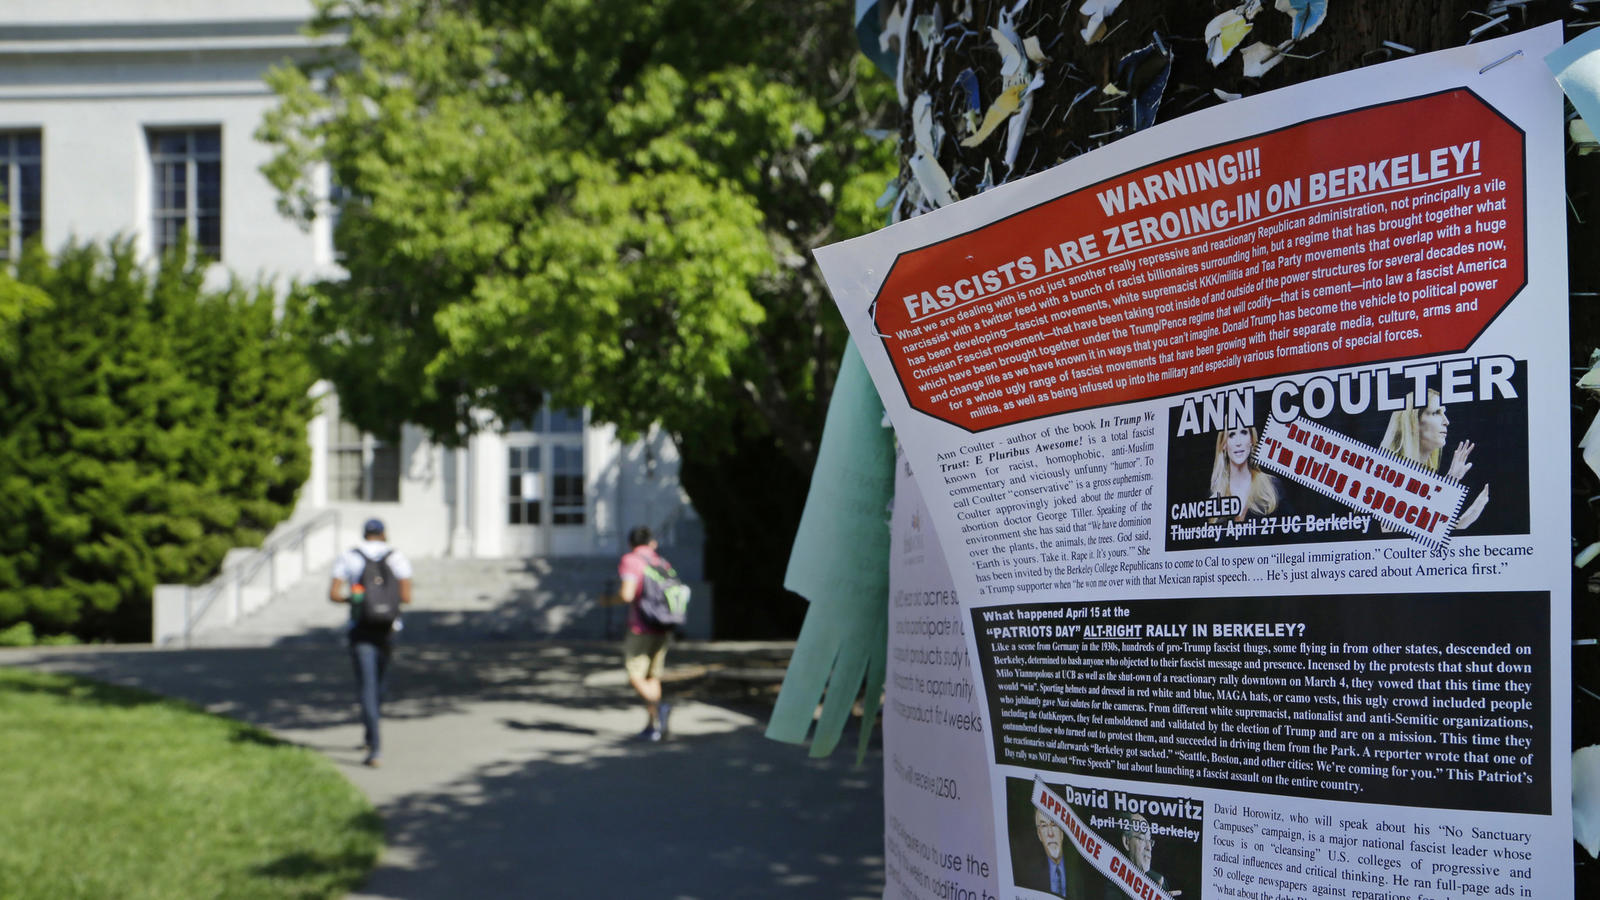 A leaflet detailing the controversy over a speech by Ann Coulter is stapled to a message board near Sproul Hall on the UC Berkeley campus. (Associated Press)